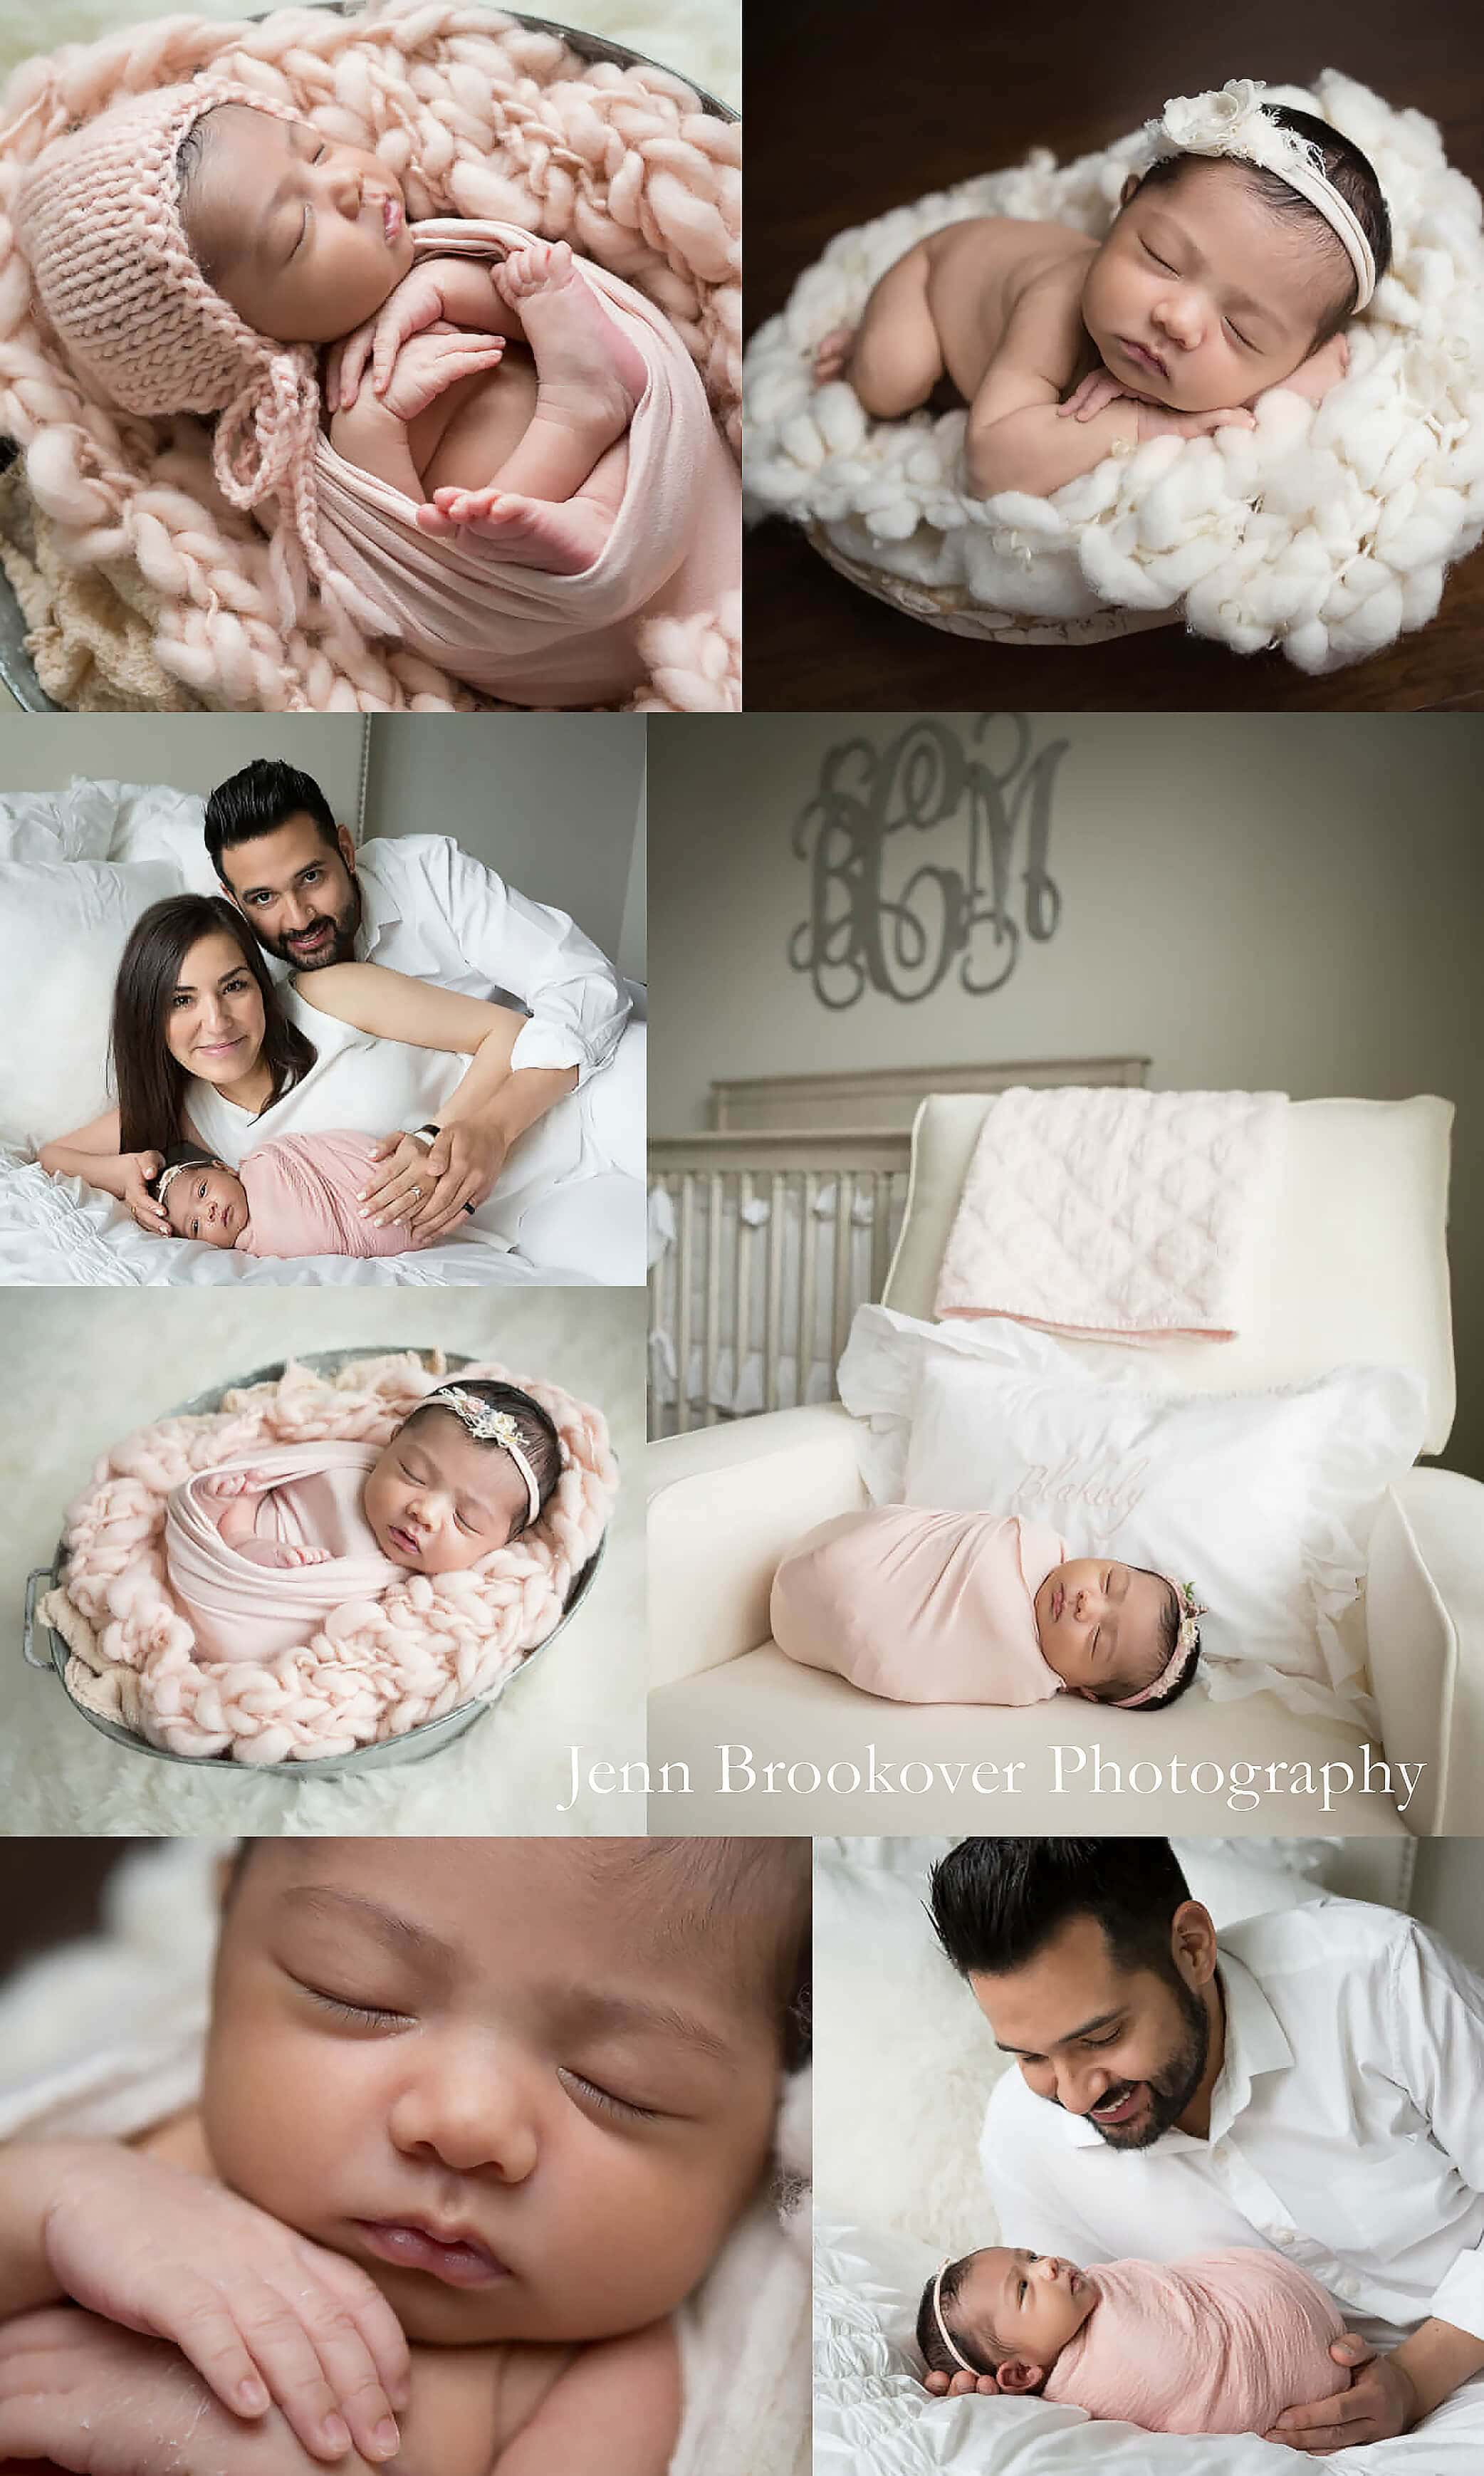 newborn baby girl session at home in San Antonio, Texas using cream, blush and gray